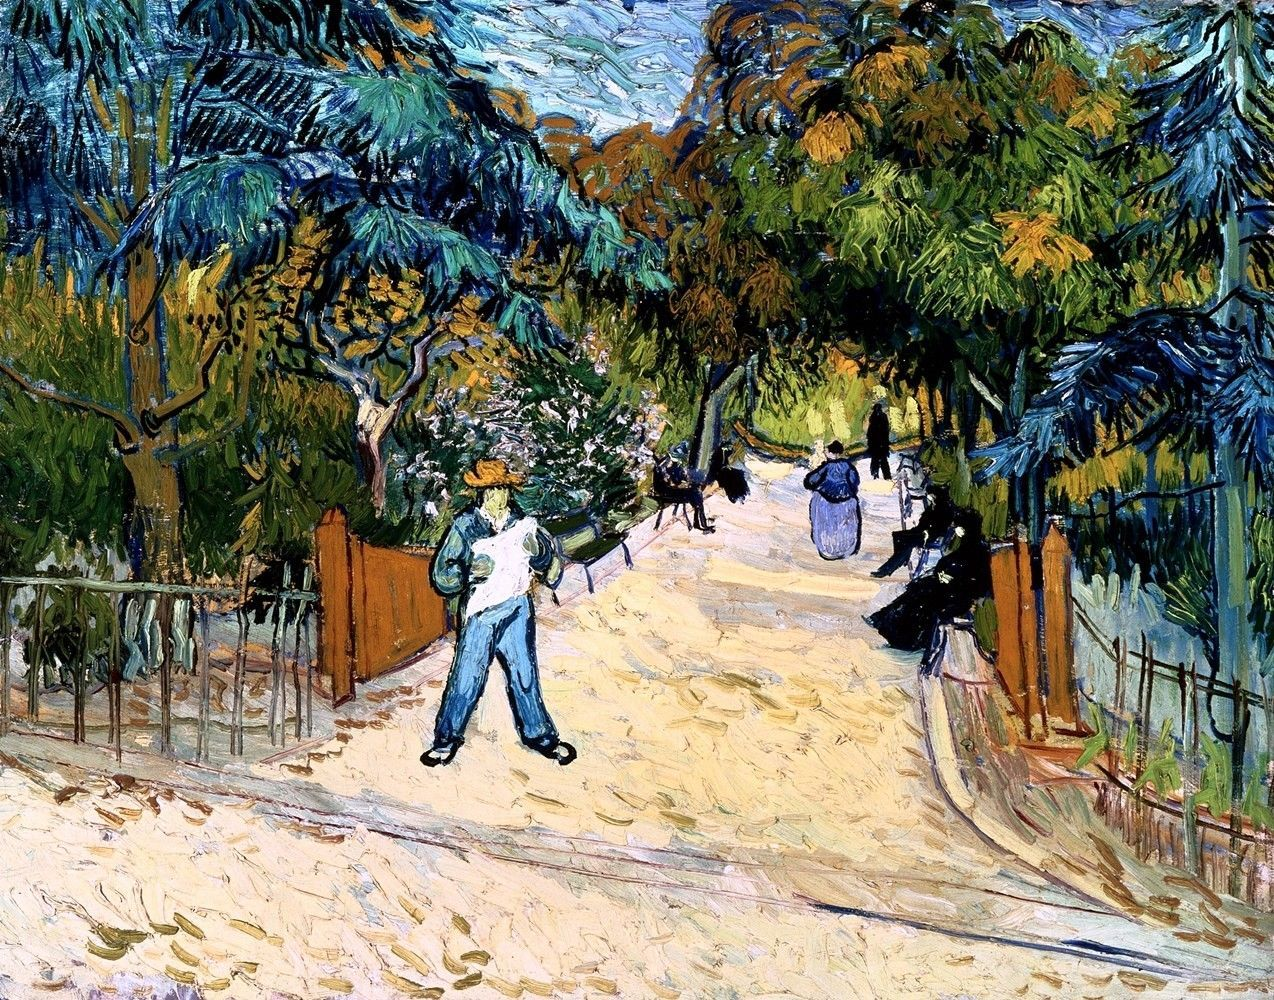 Entrance to the Public Gardens Painting by Vincent Van Gogh Art Reproduction